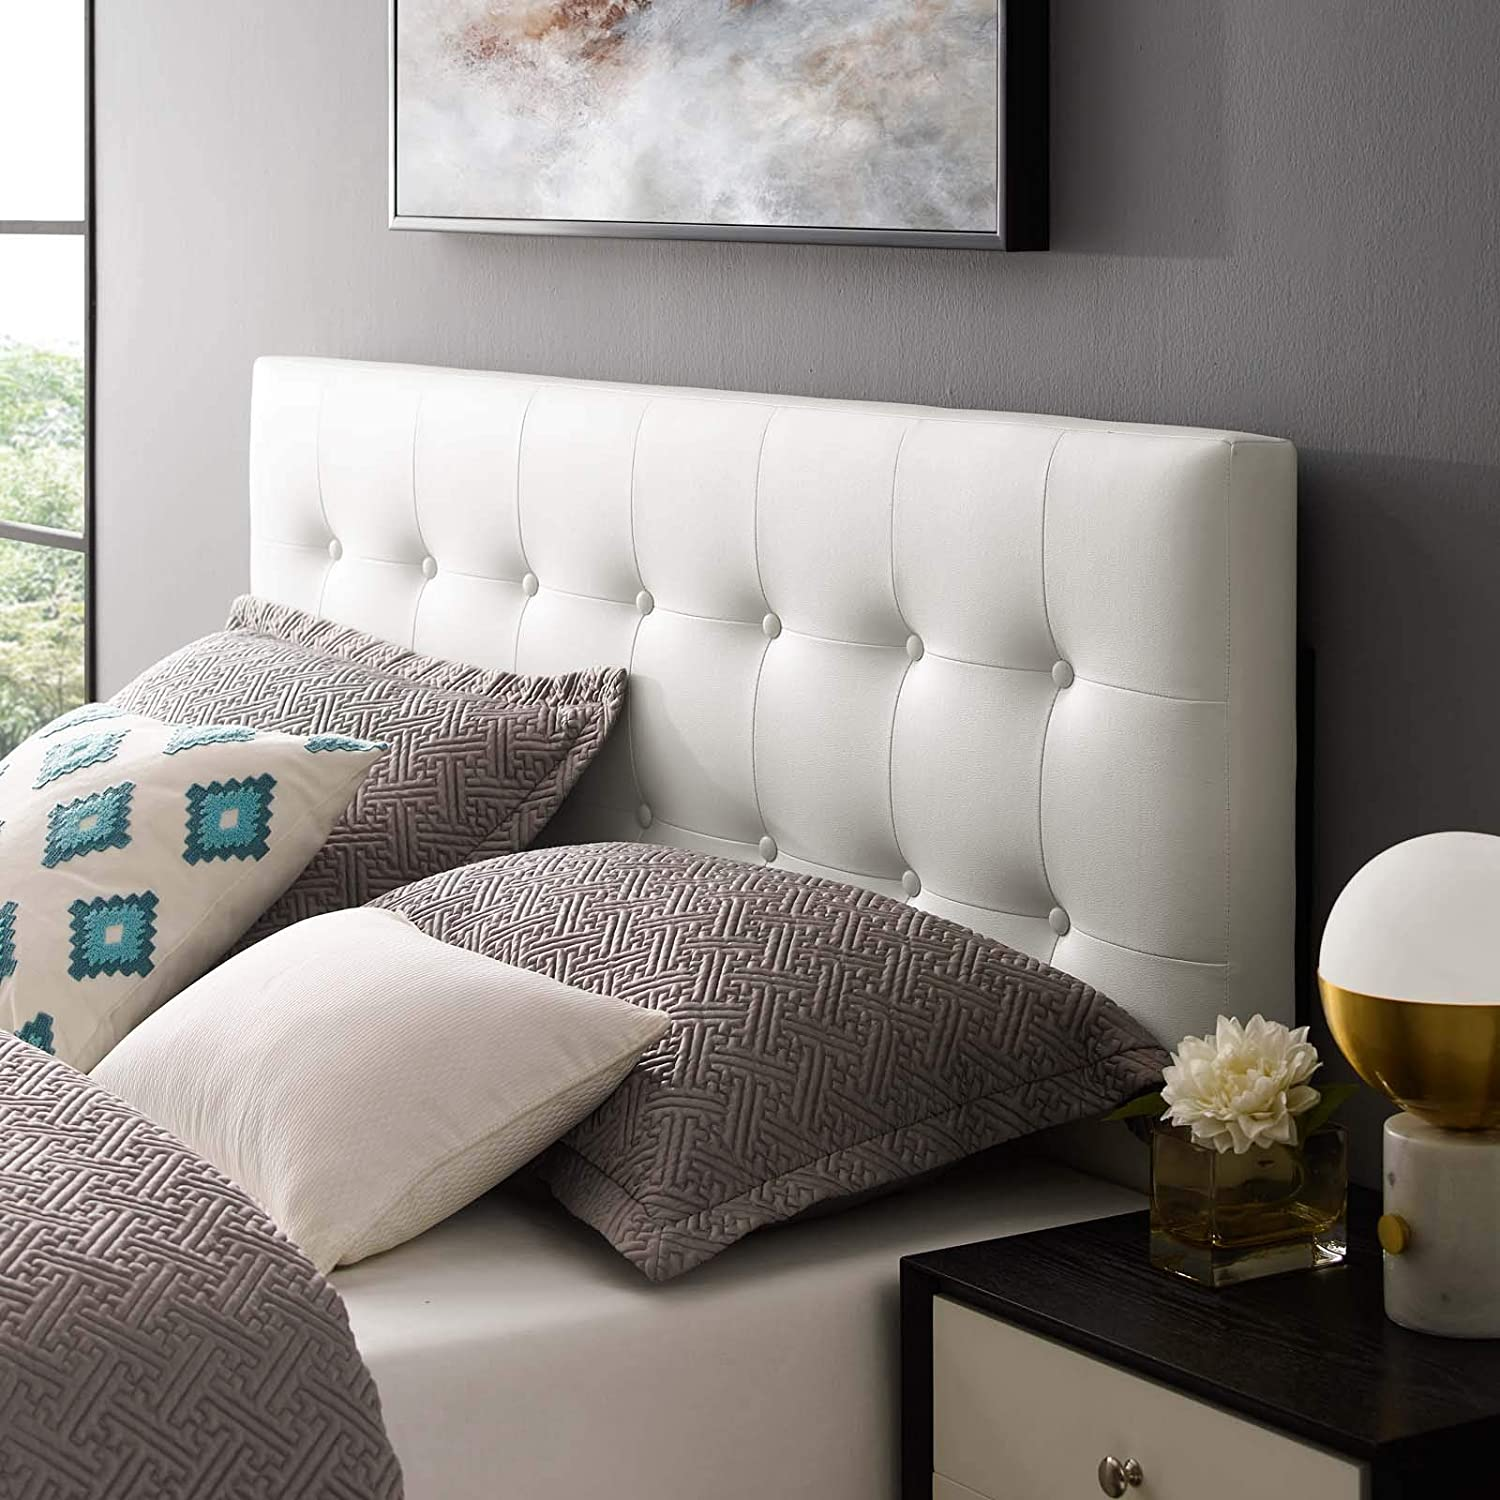 Modway Emily Tufted Button Faux Leather Upholstered Full Headboard in White